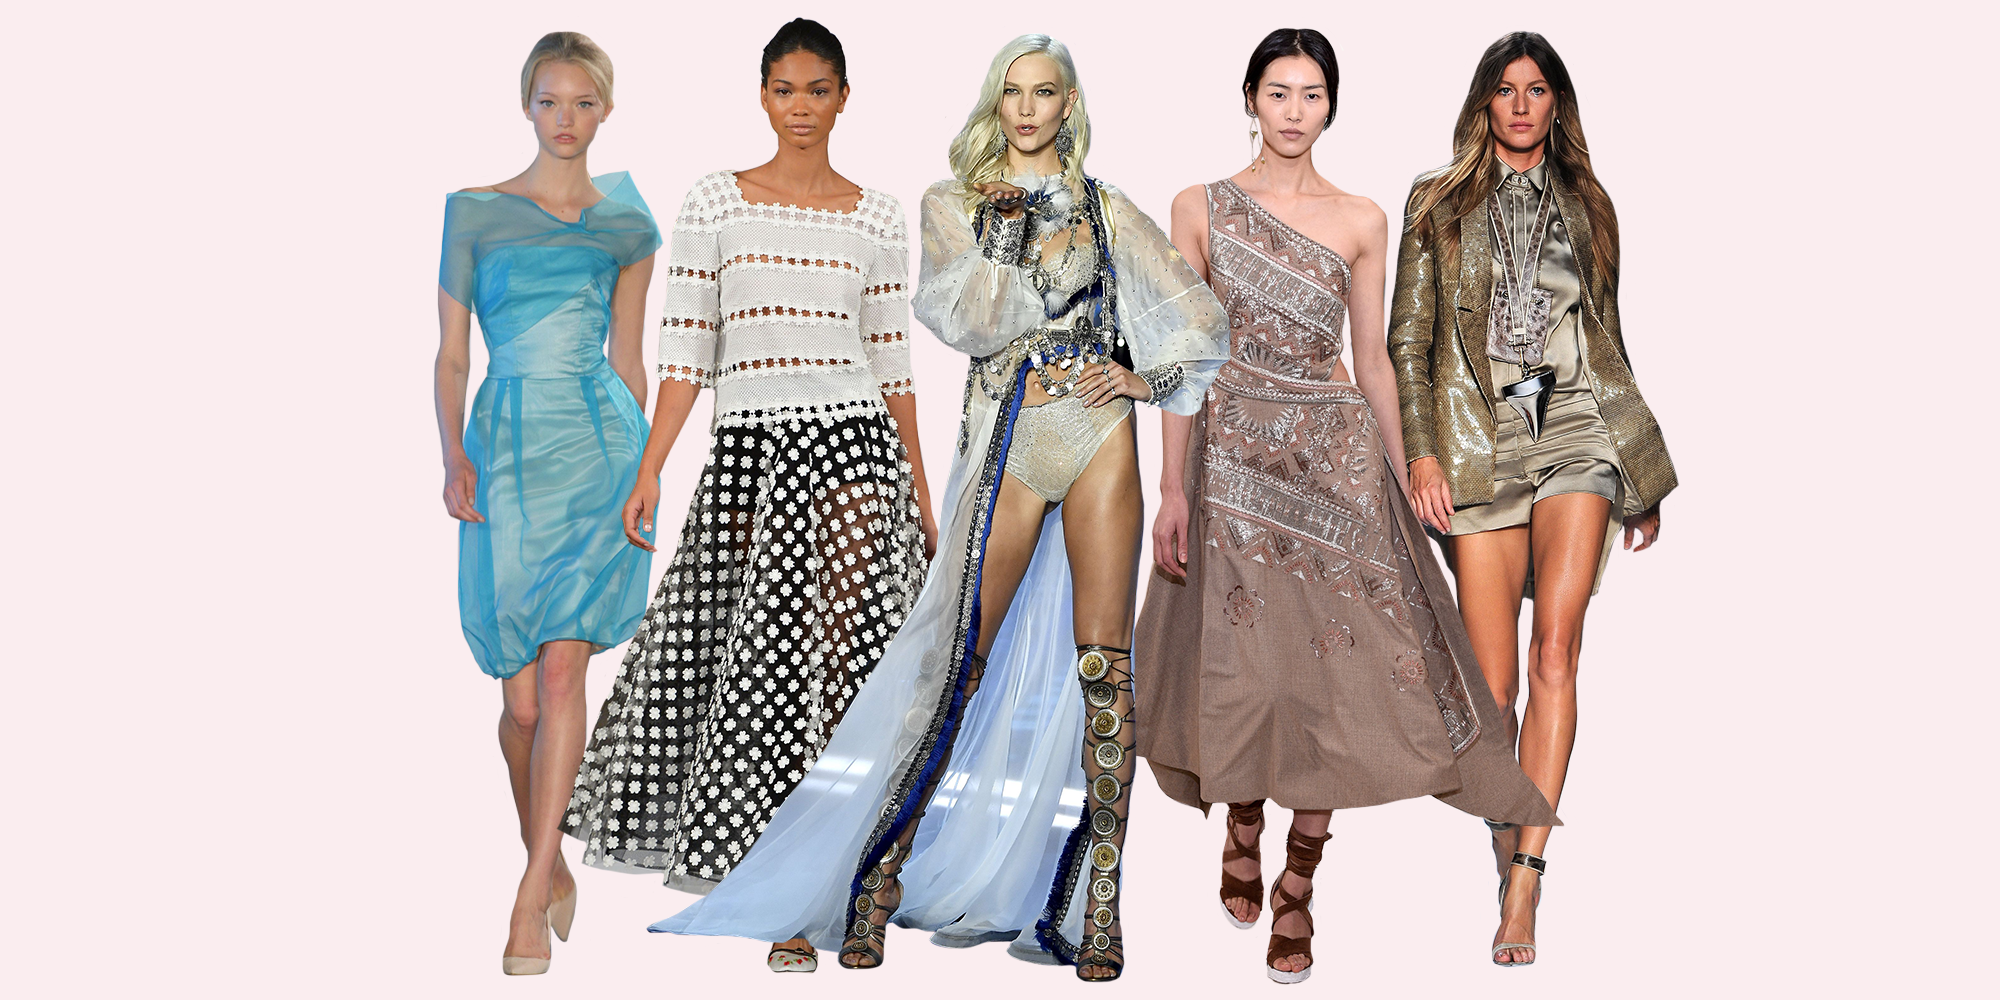 They ruled the runways.